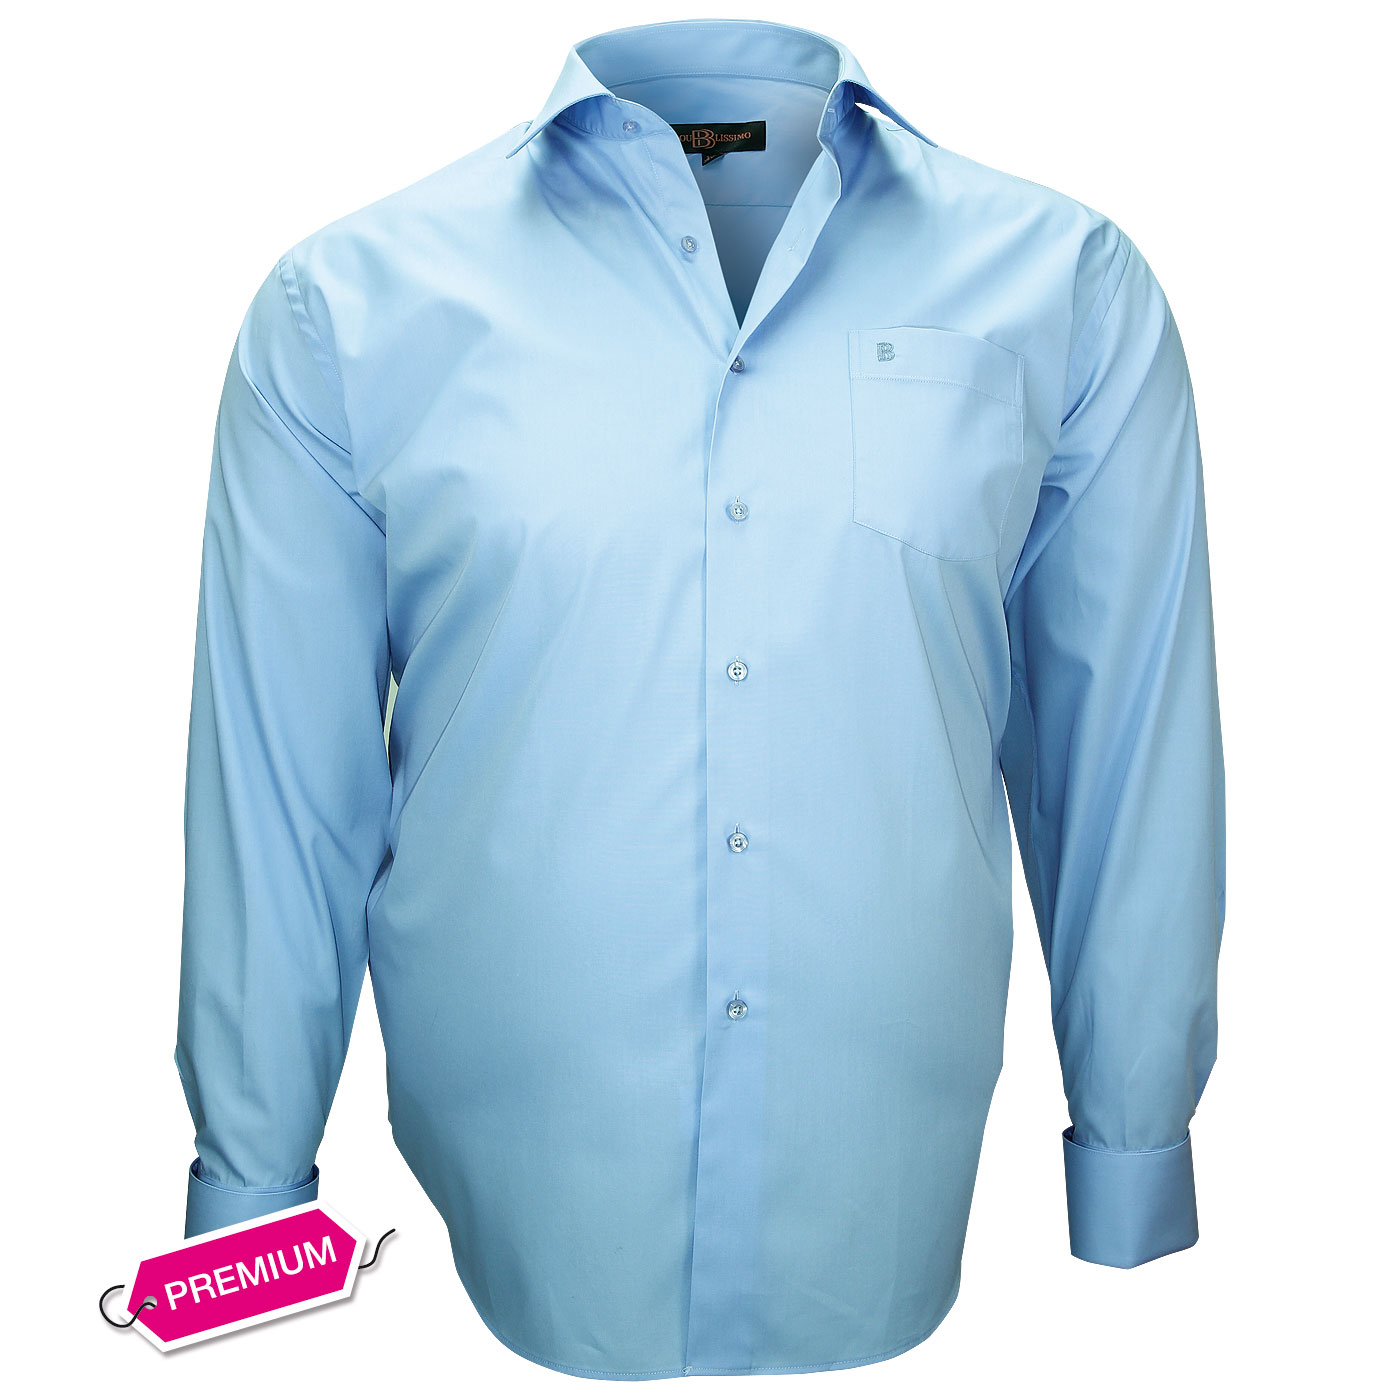 Big sizes man's Shirts short sleeves from  2XL to  6XL